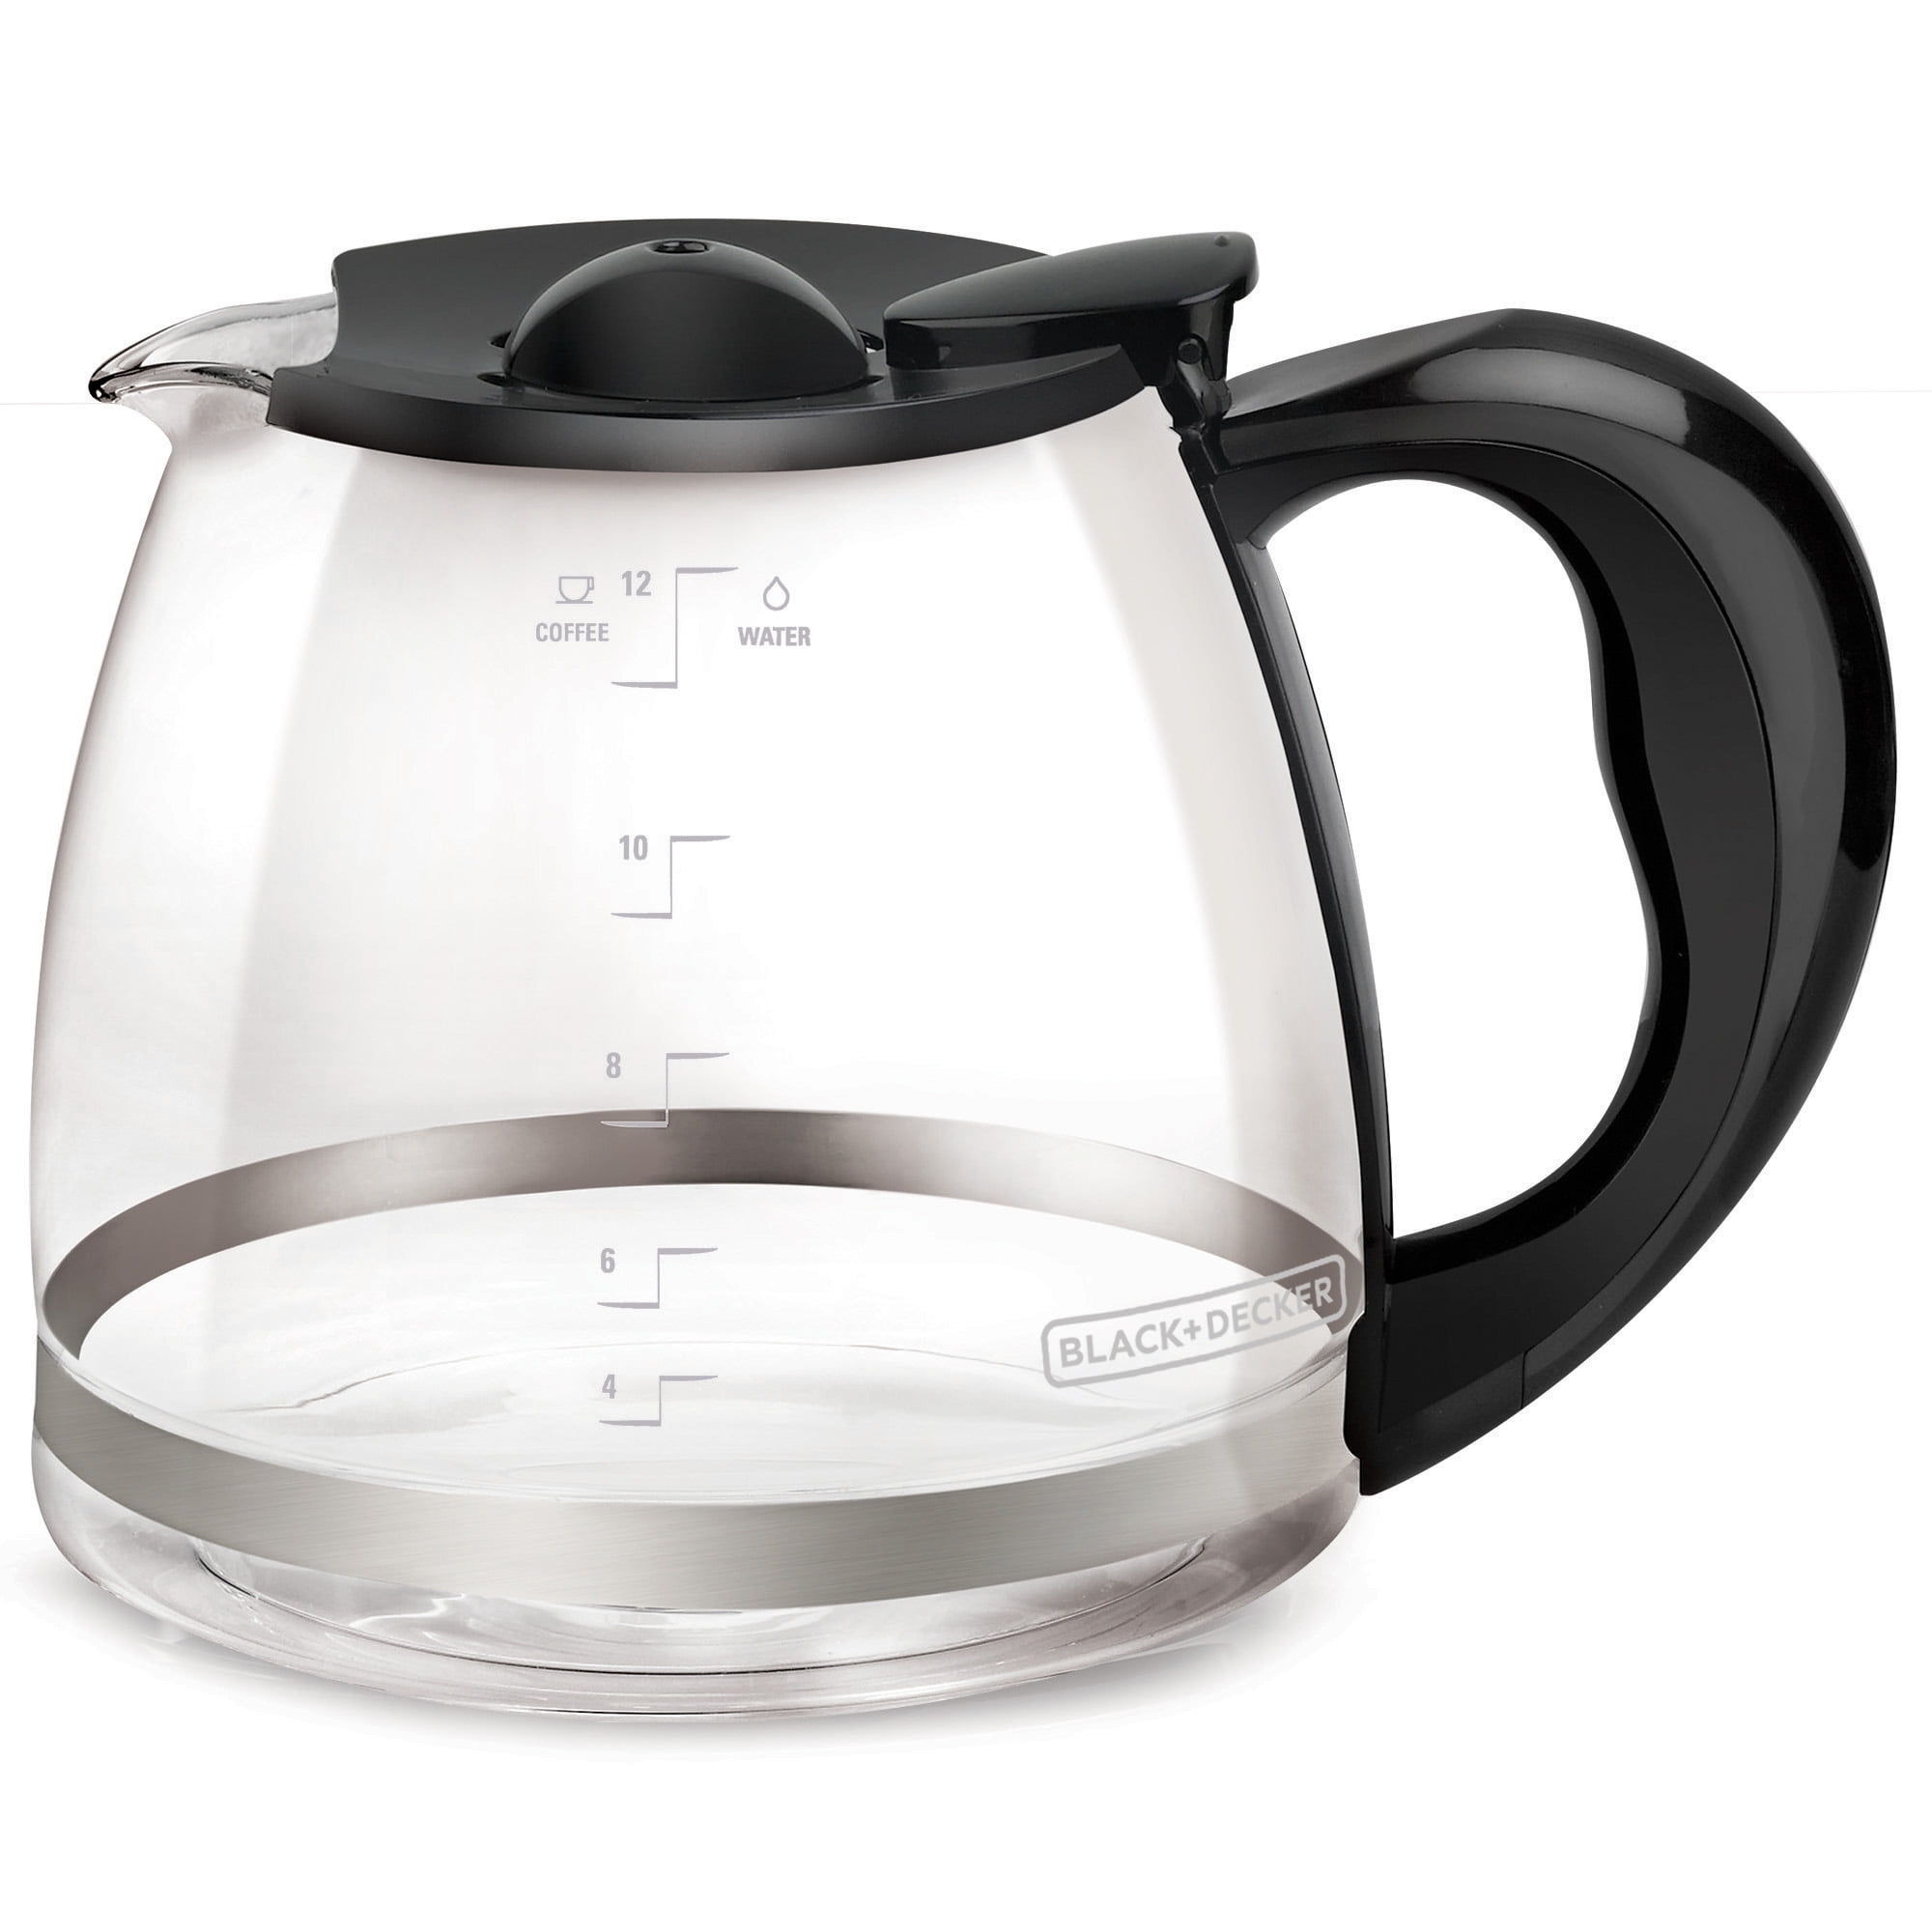 Black & Decker 12-Cup Replacement Carafe, Clear, GC3000B-4 by BLACK DECKER